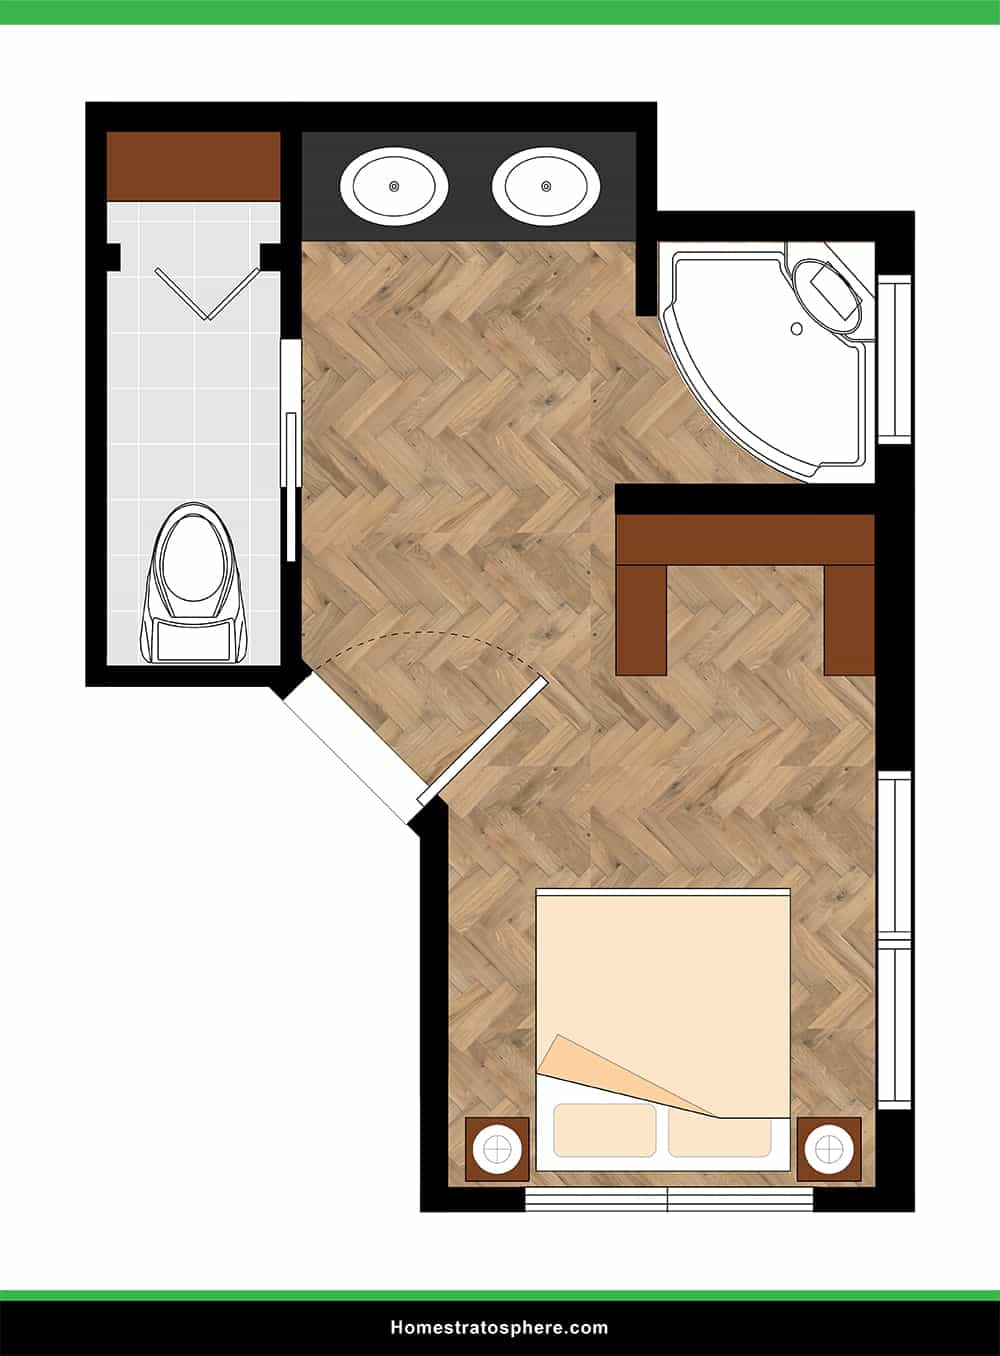 Angled Primary Bedroom with Open Bathroom Configuration